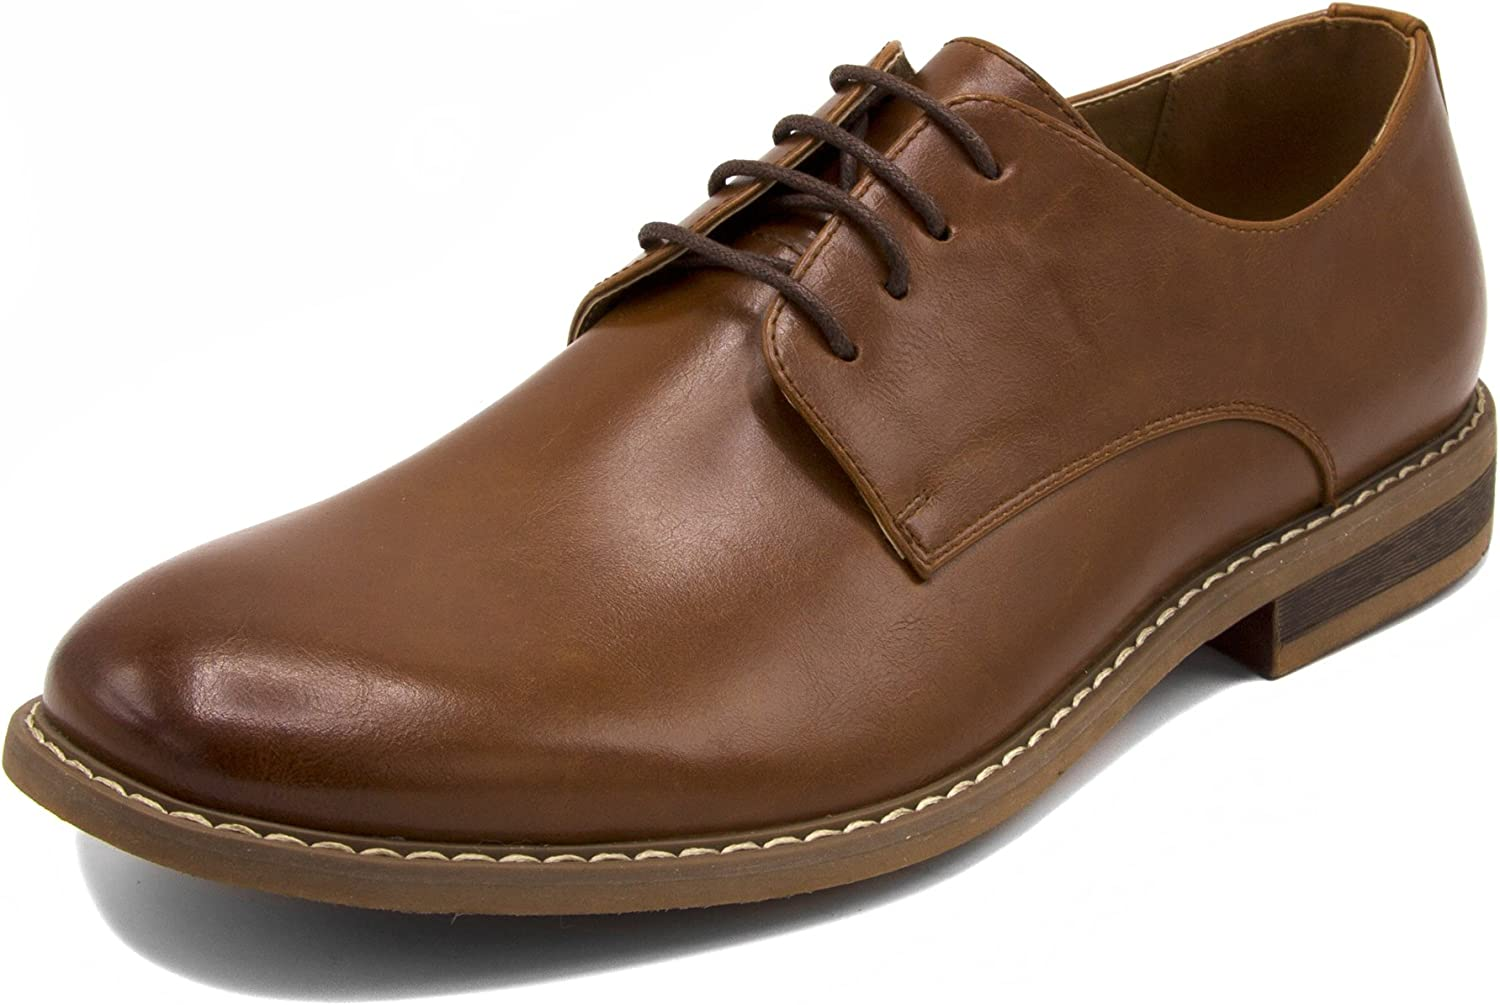 Nautica Men's Dress Shoes, Lace Up Oxford, Slip On Moc Toe Loafer-Harbor-Tan Smooth-7.5